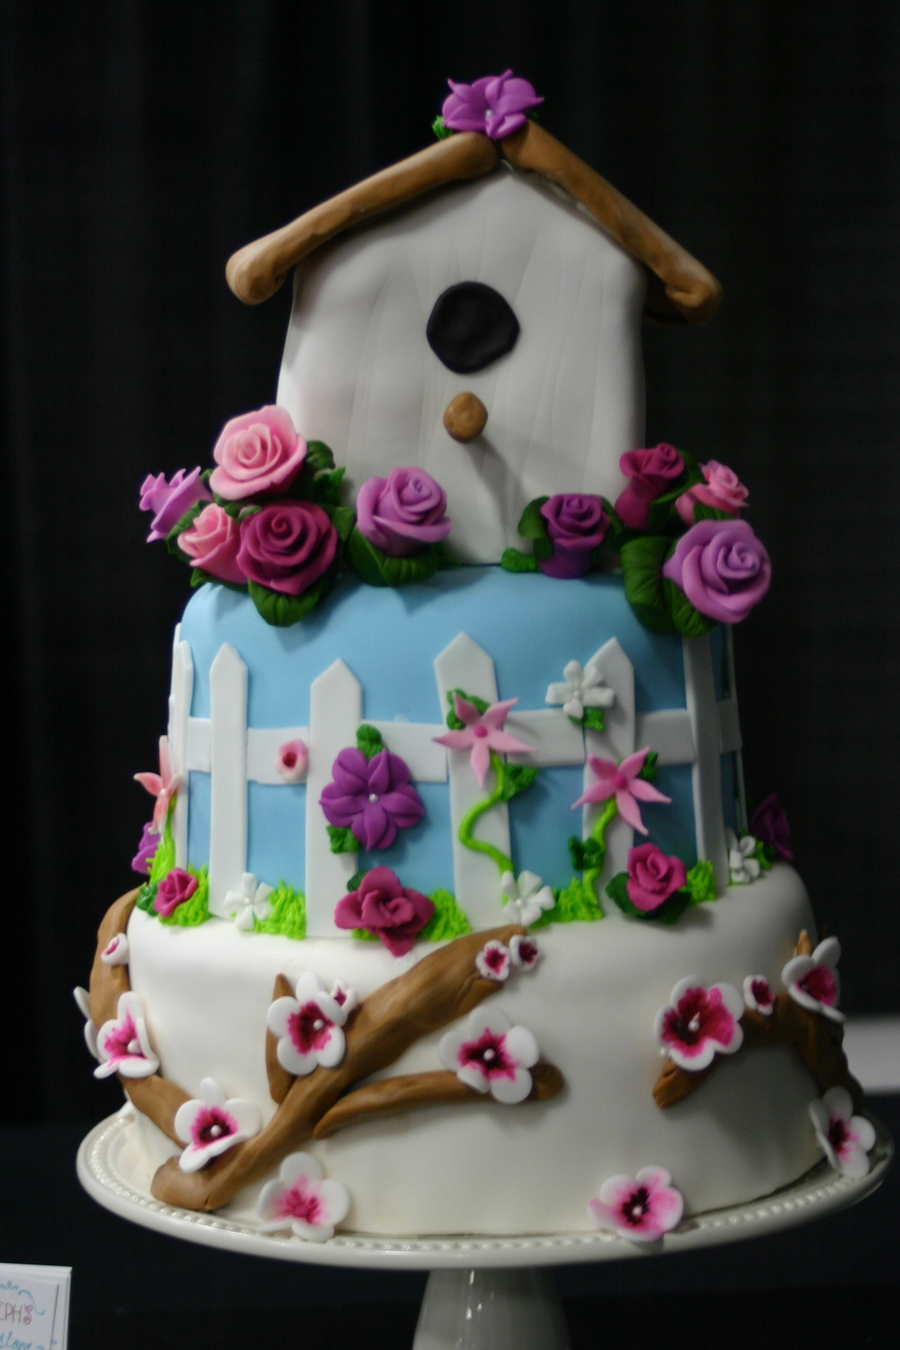 Home And Garden on Cake Central